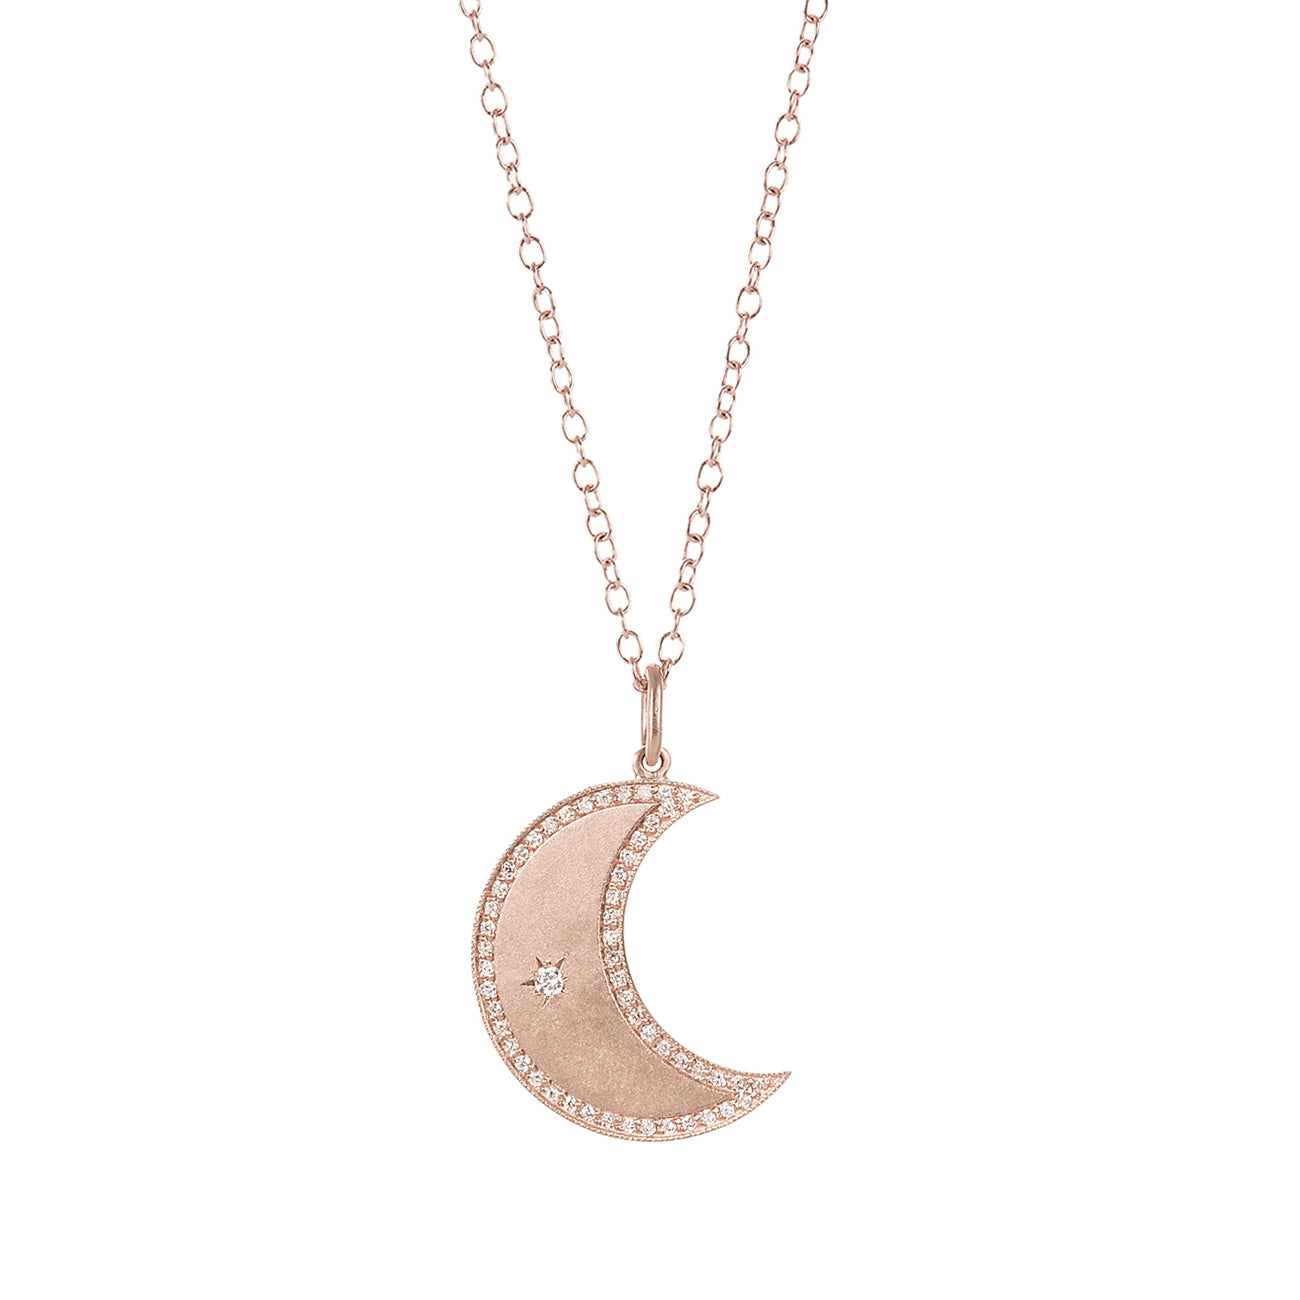 Large Crescent Moon Necklace - Andrea Fohrman - Necklaces | Broken English Jewelry